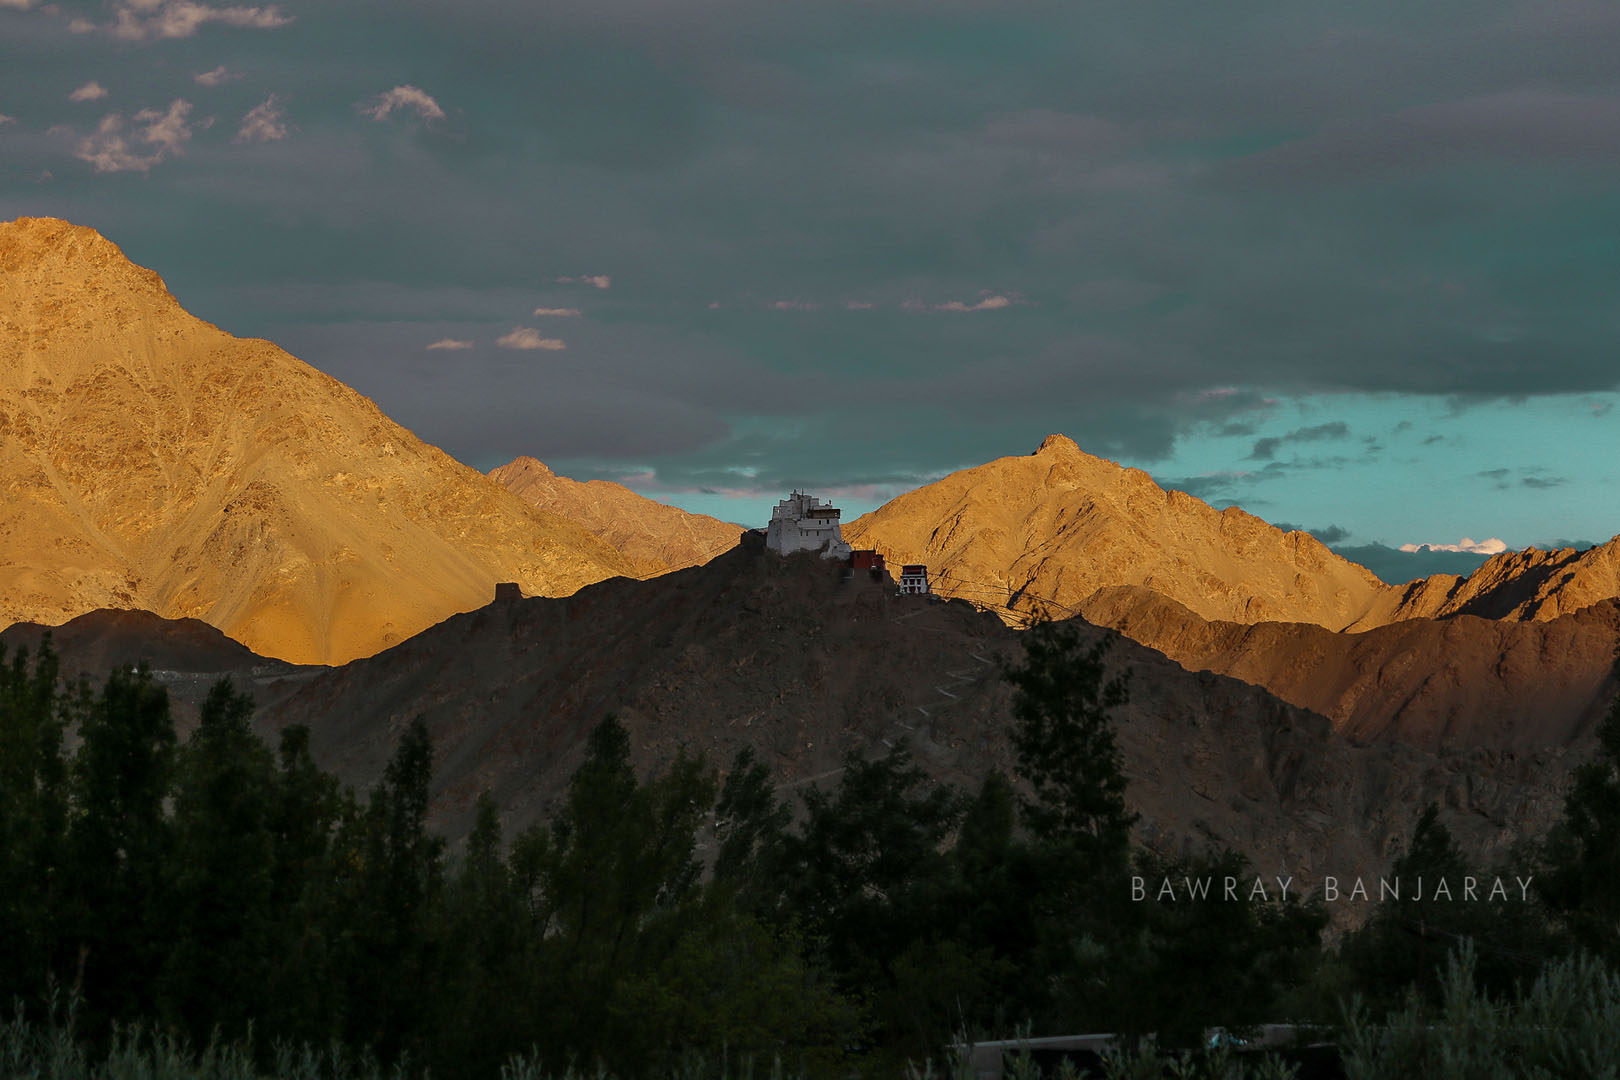 Namgyal Tos Monastery is one of the most popular places to visit in Ladakh